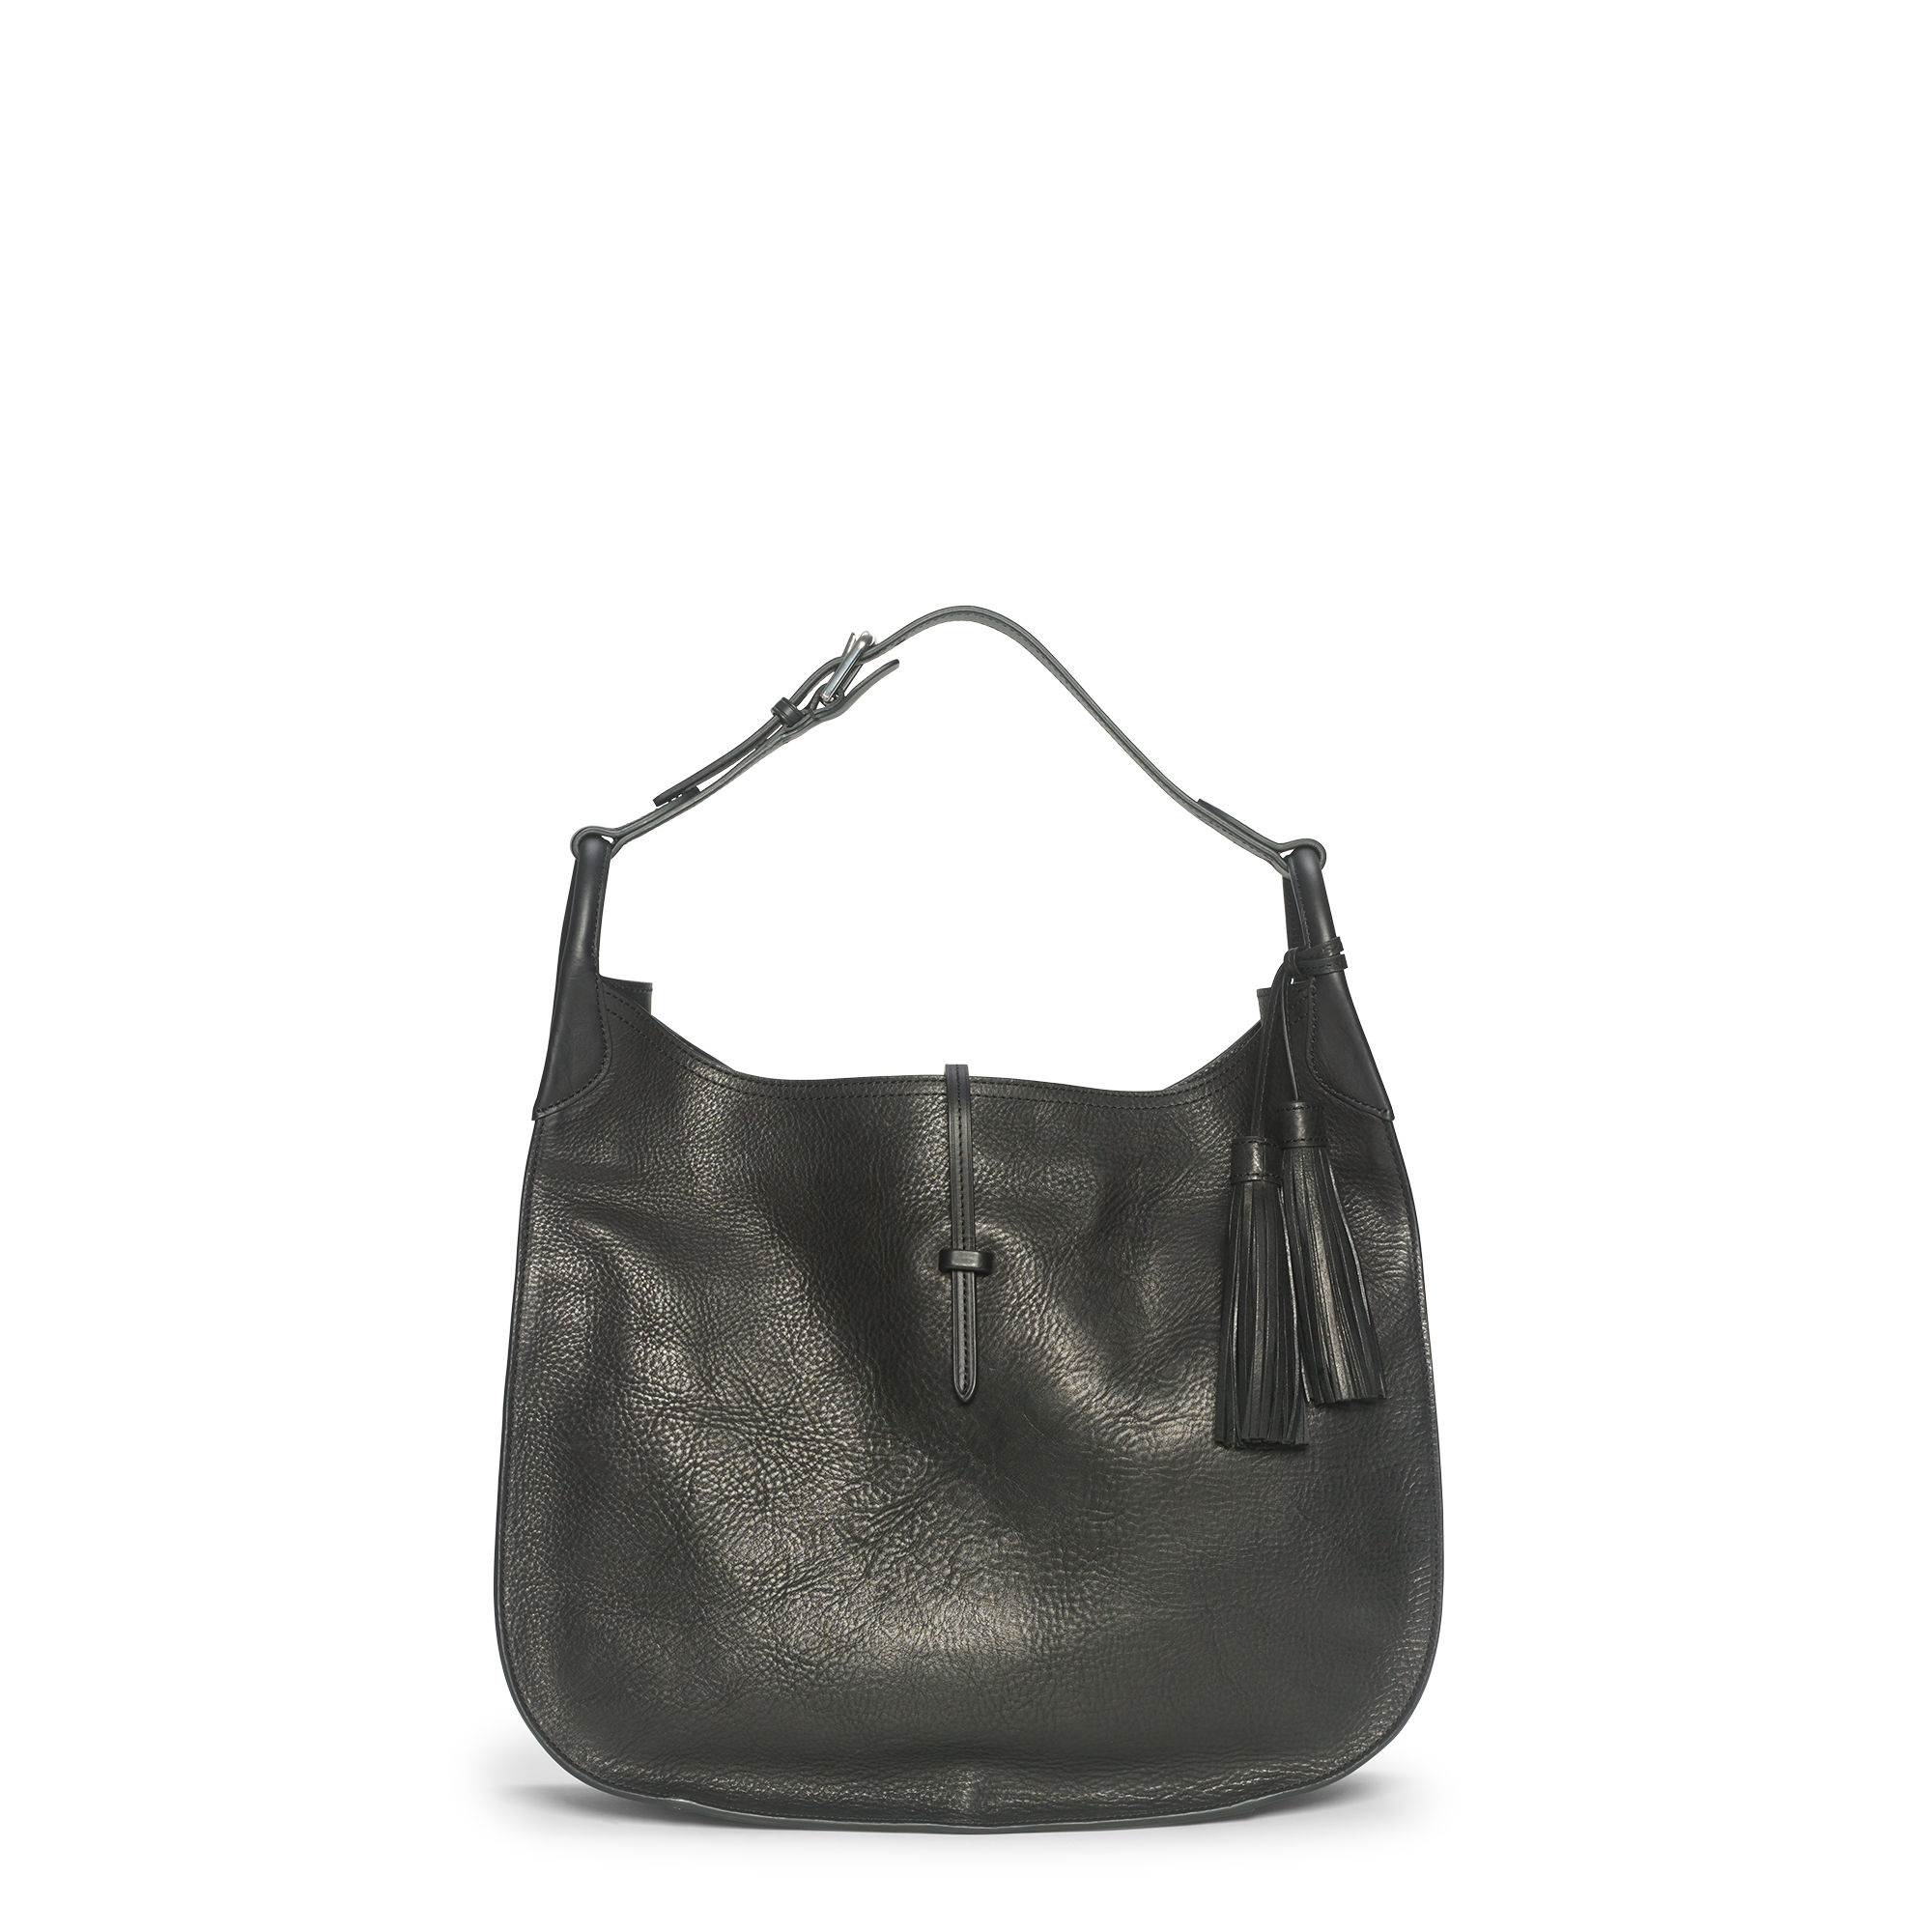 9d0d0ca2032d Polo Ralph Lauren Tumbled Leather Hobo Bag in Black - Lyst